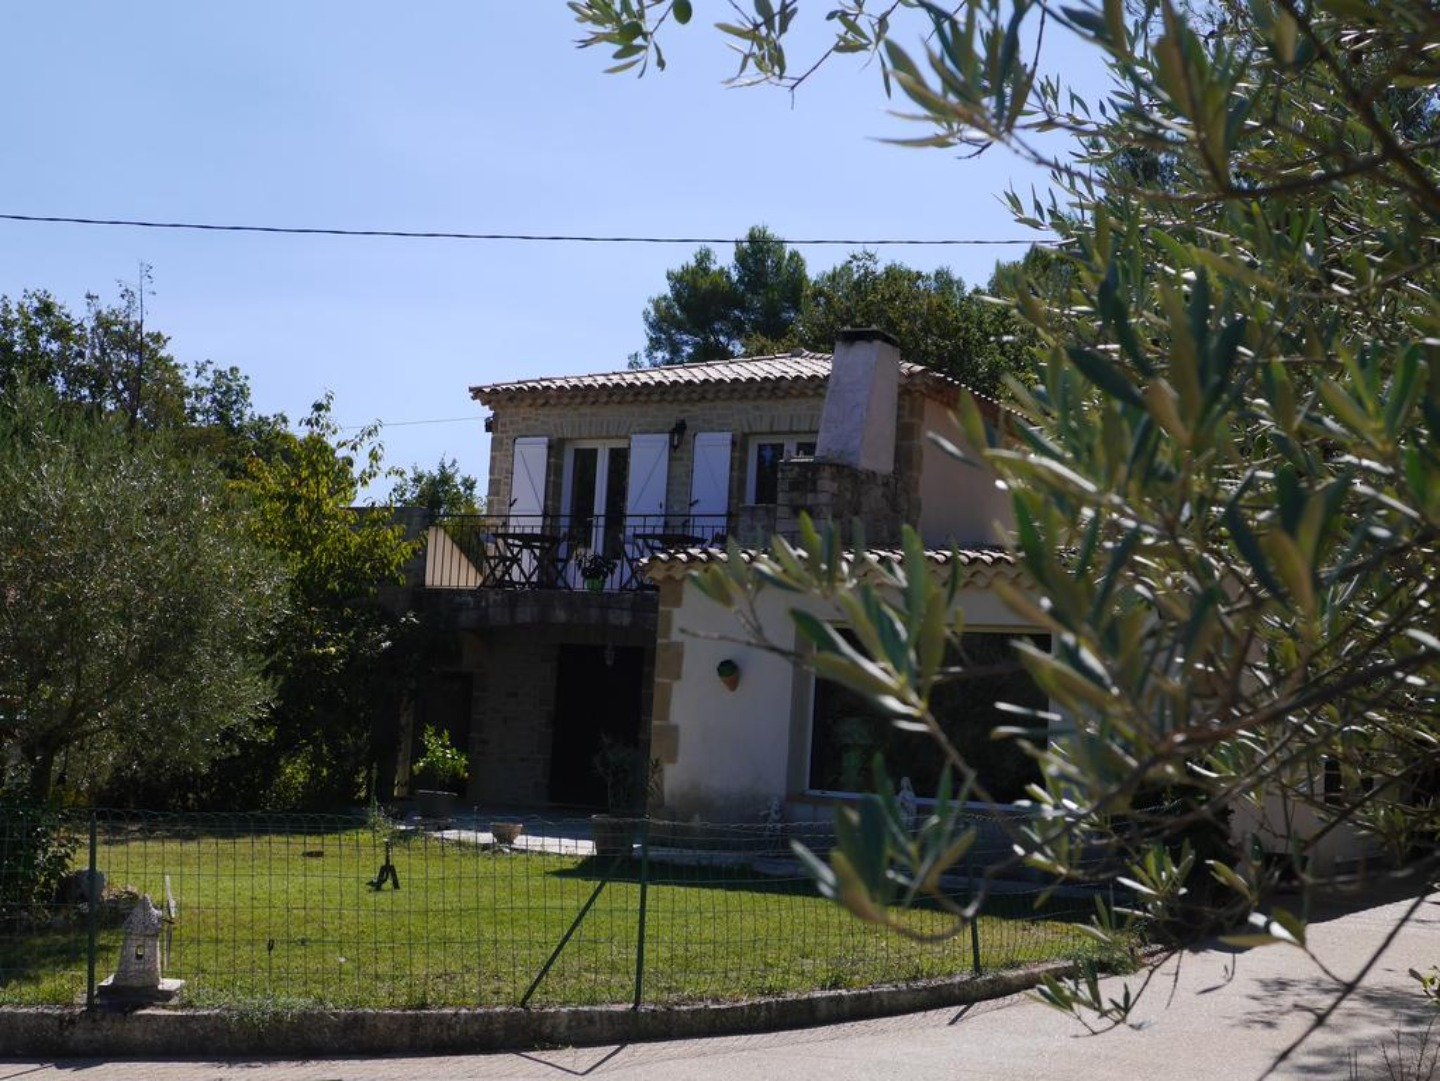 A tree in front of a house at Le Paradis de Clarisse.